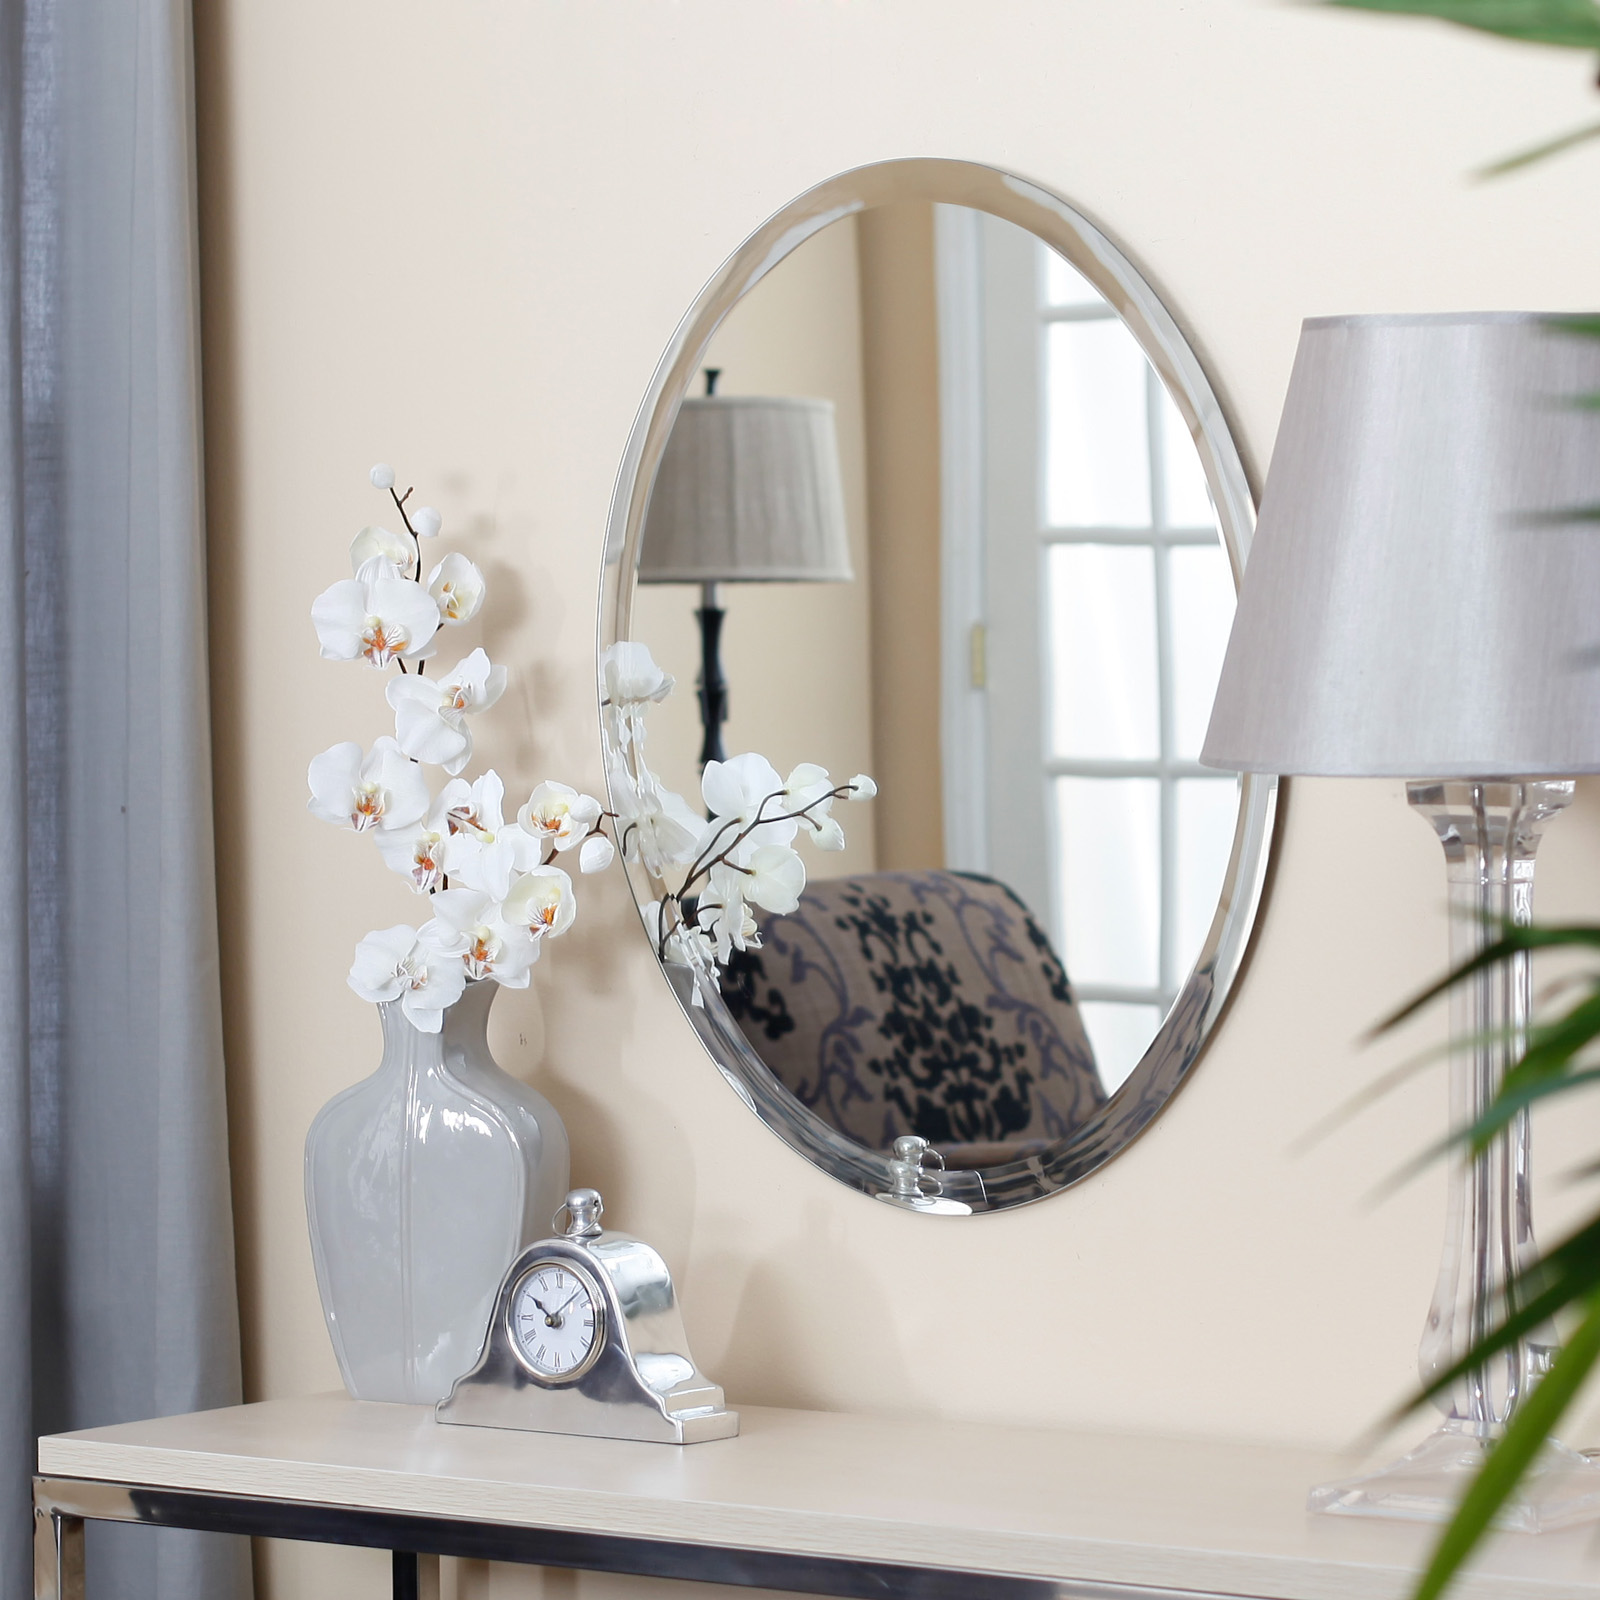 Uttermost Frameless Oval Beveled Vanity Mirror Mirrors At Hayneedle